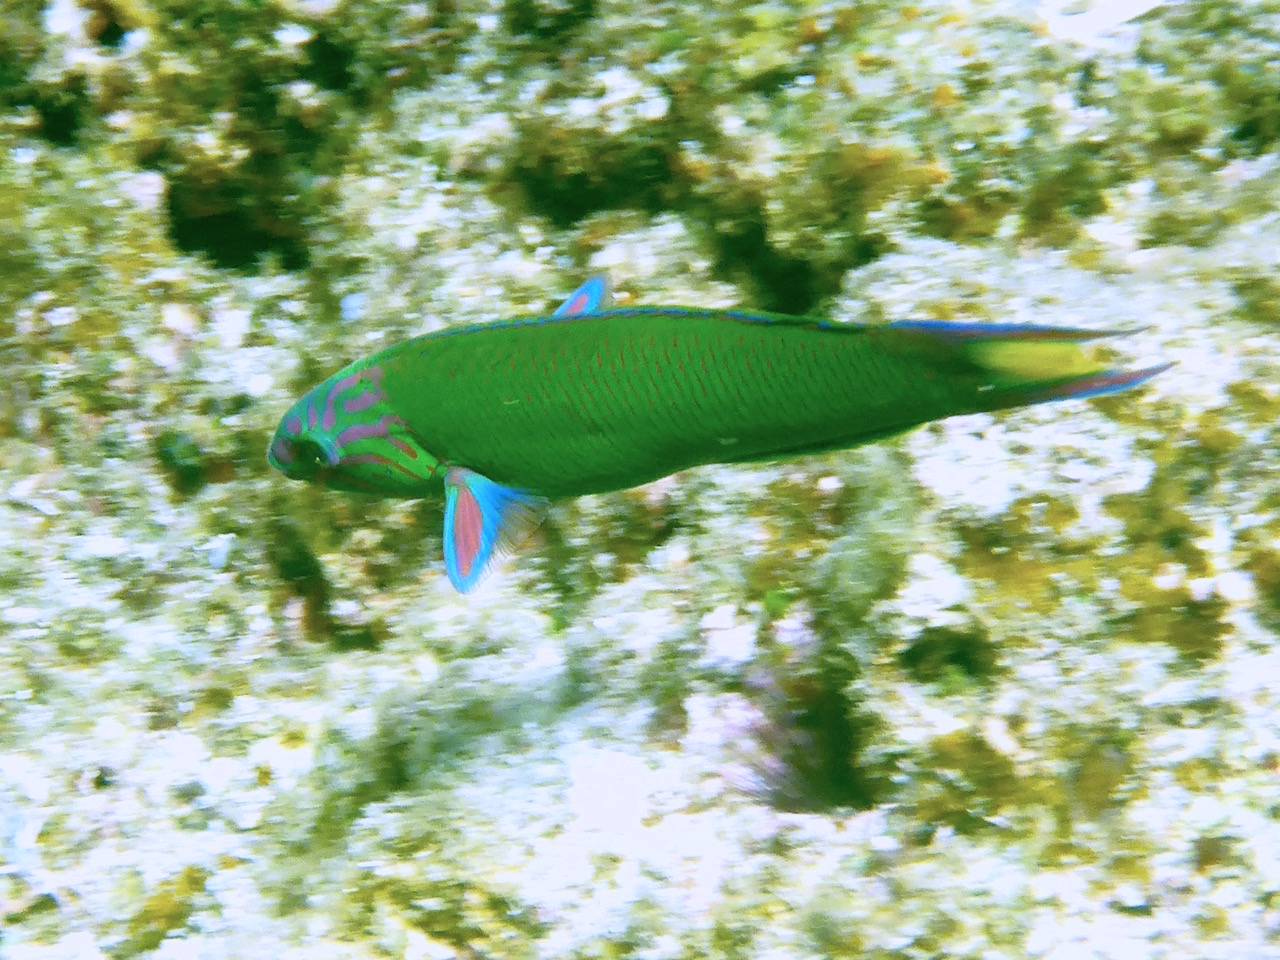 Parrotfish. Photo: Vlademer Laloy